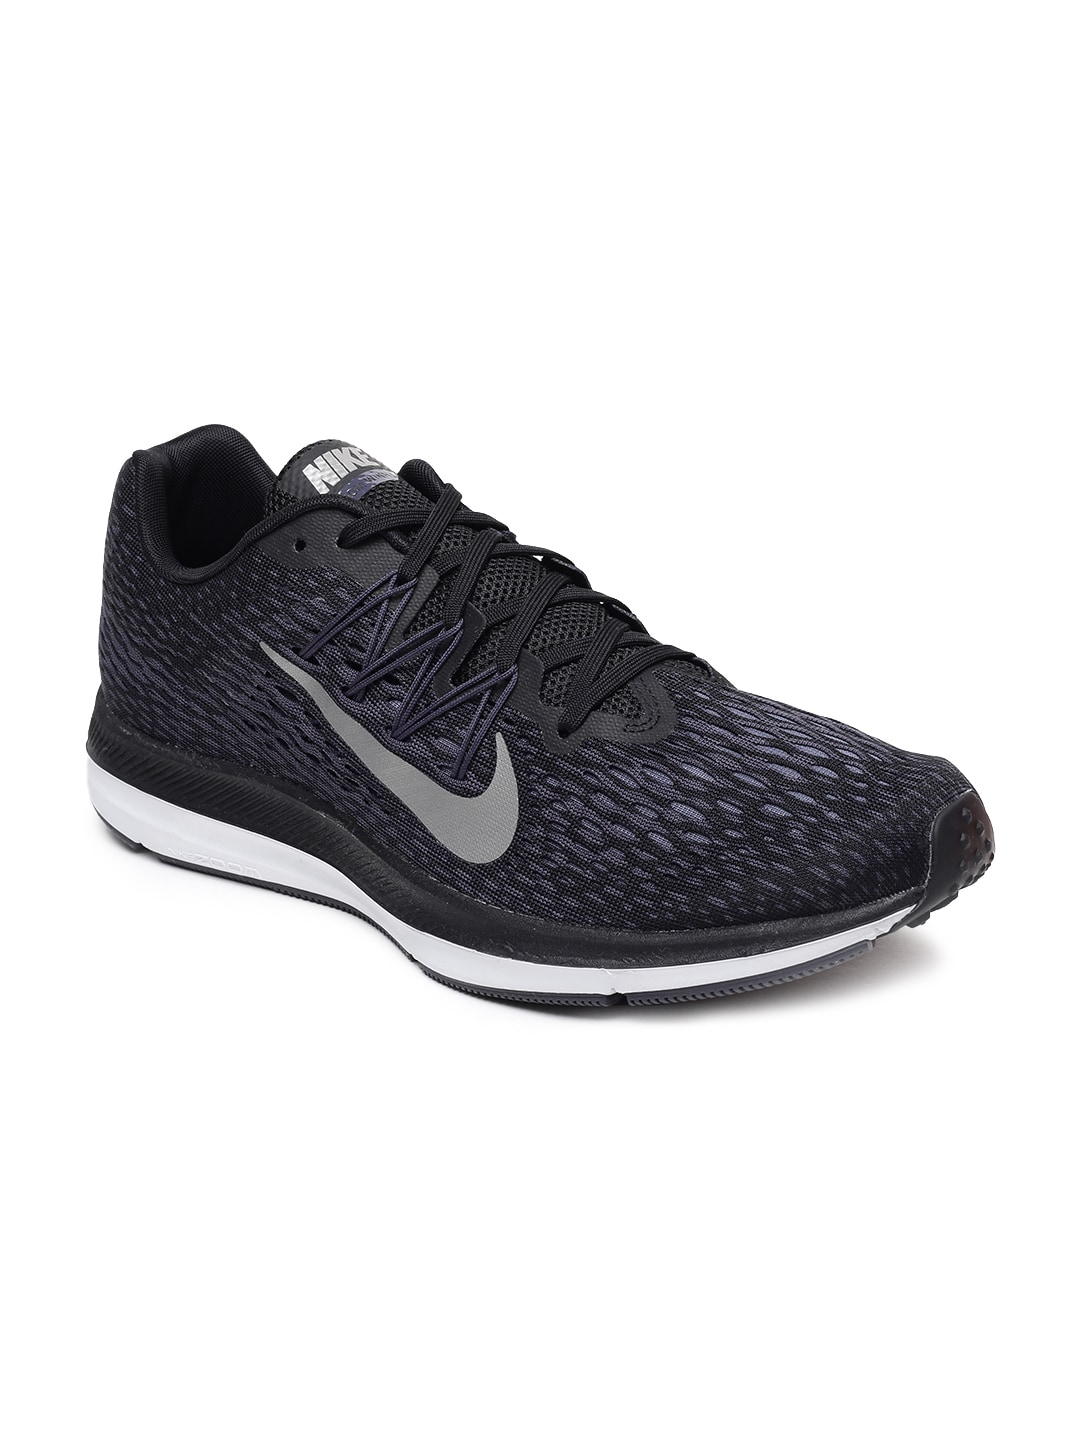 check out a426d 44188 coupon code for nike free trainer 5.0 nero uk fa524 df539